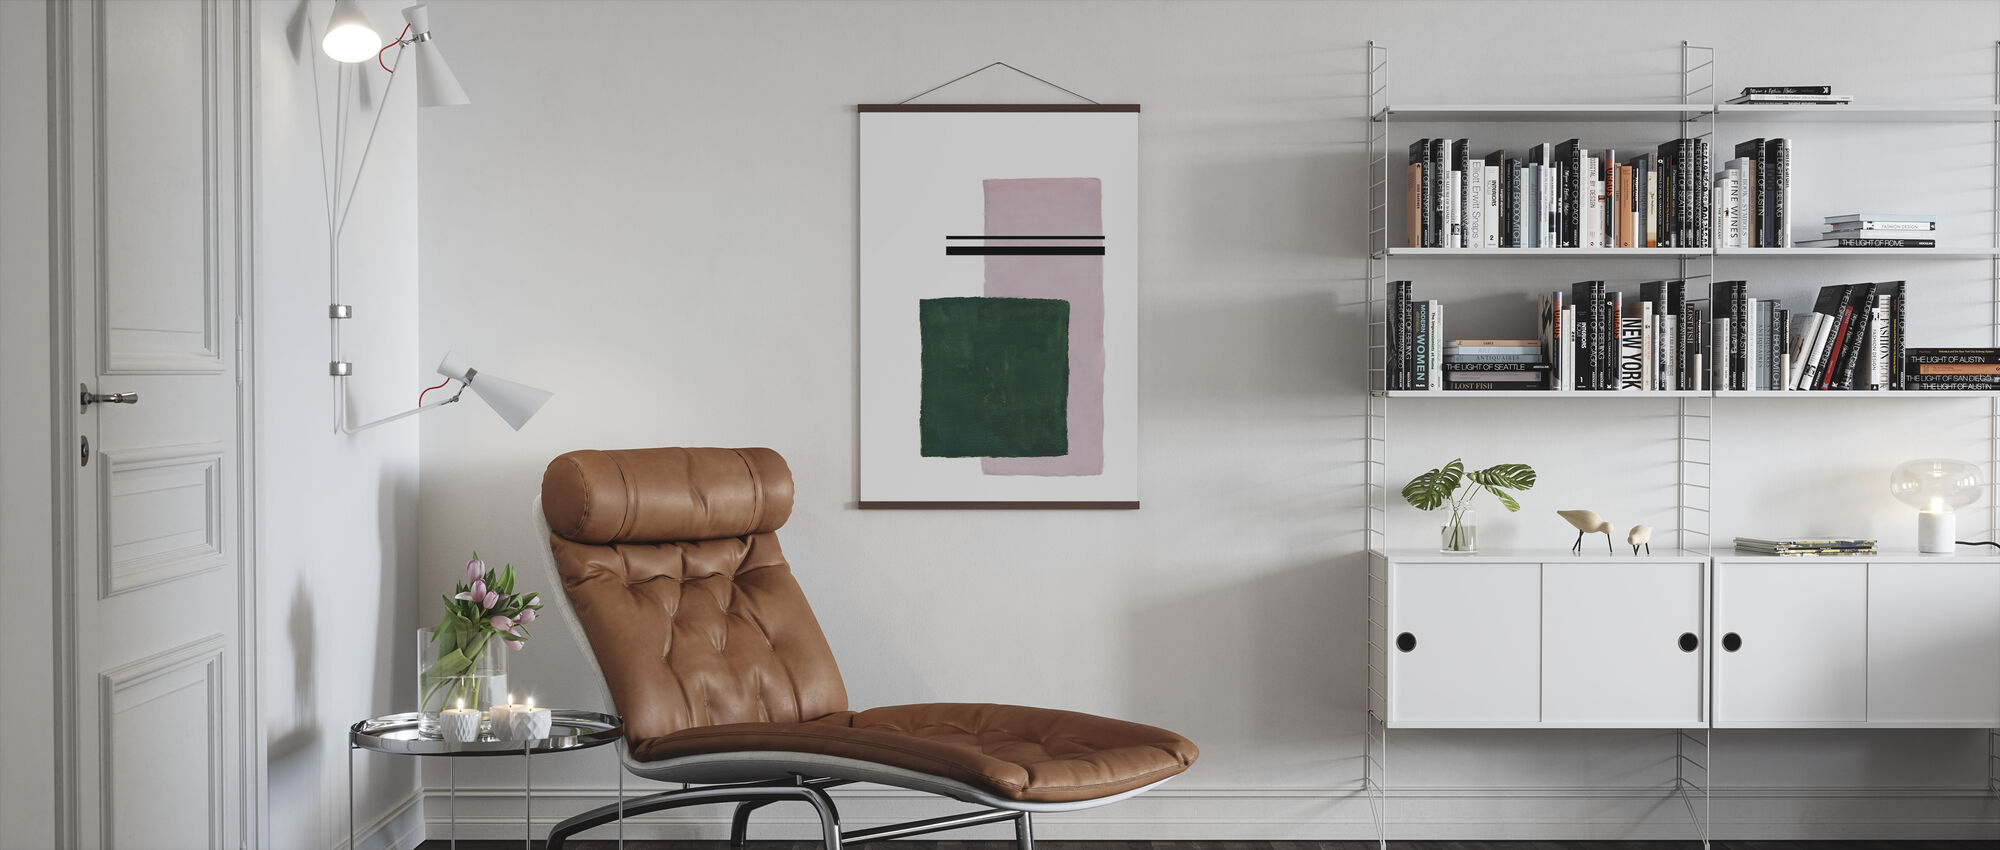 Equilibrium III - Poster - Living Room